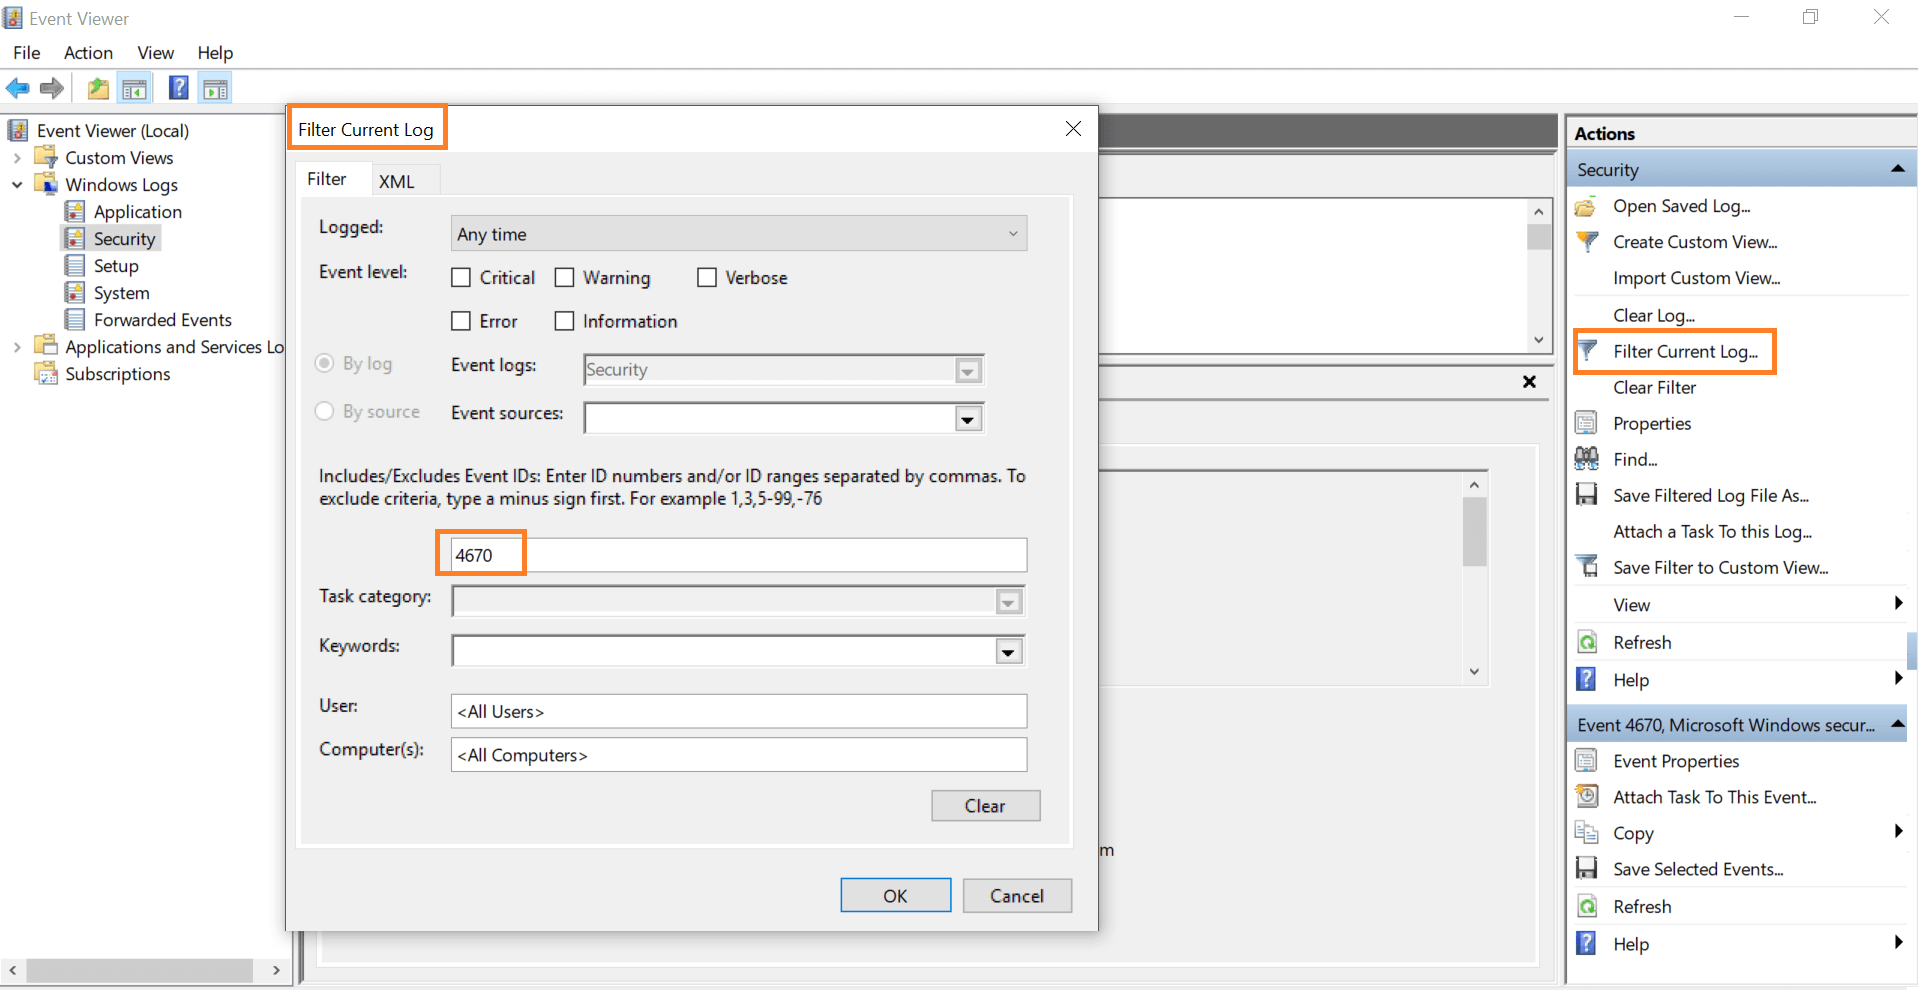 monitor-changes-to-files-and-folder-permissions-indicates-file-folder-permission-changes